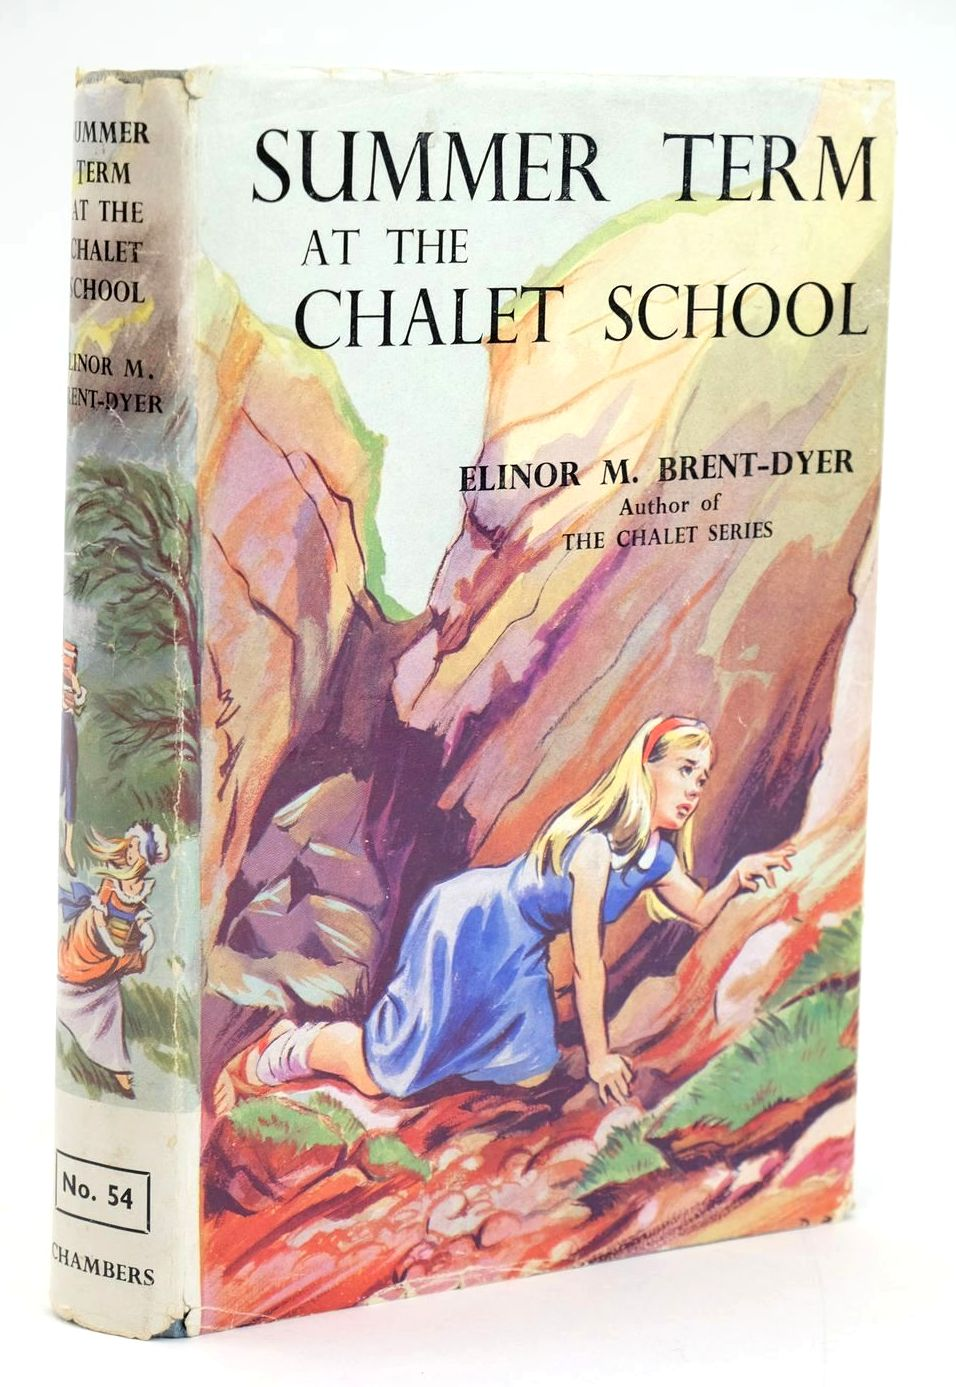 Photo of SUMMER TERM AT THE CHALET SCHOOL written by Brent-Dyer, Elinor M. illustrated by Brook, D. published by W. & R. Chambers Limited (STOCK CODE: 1319192)  for sale by Stella & Rose's Books